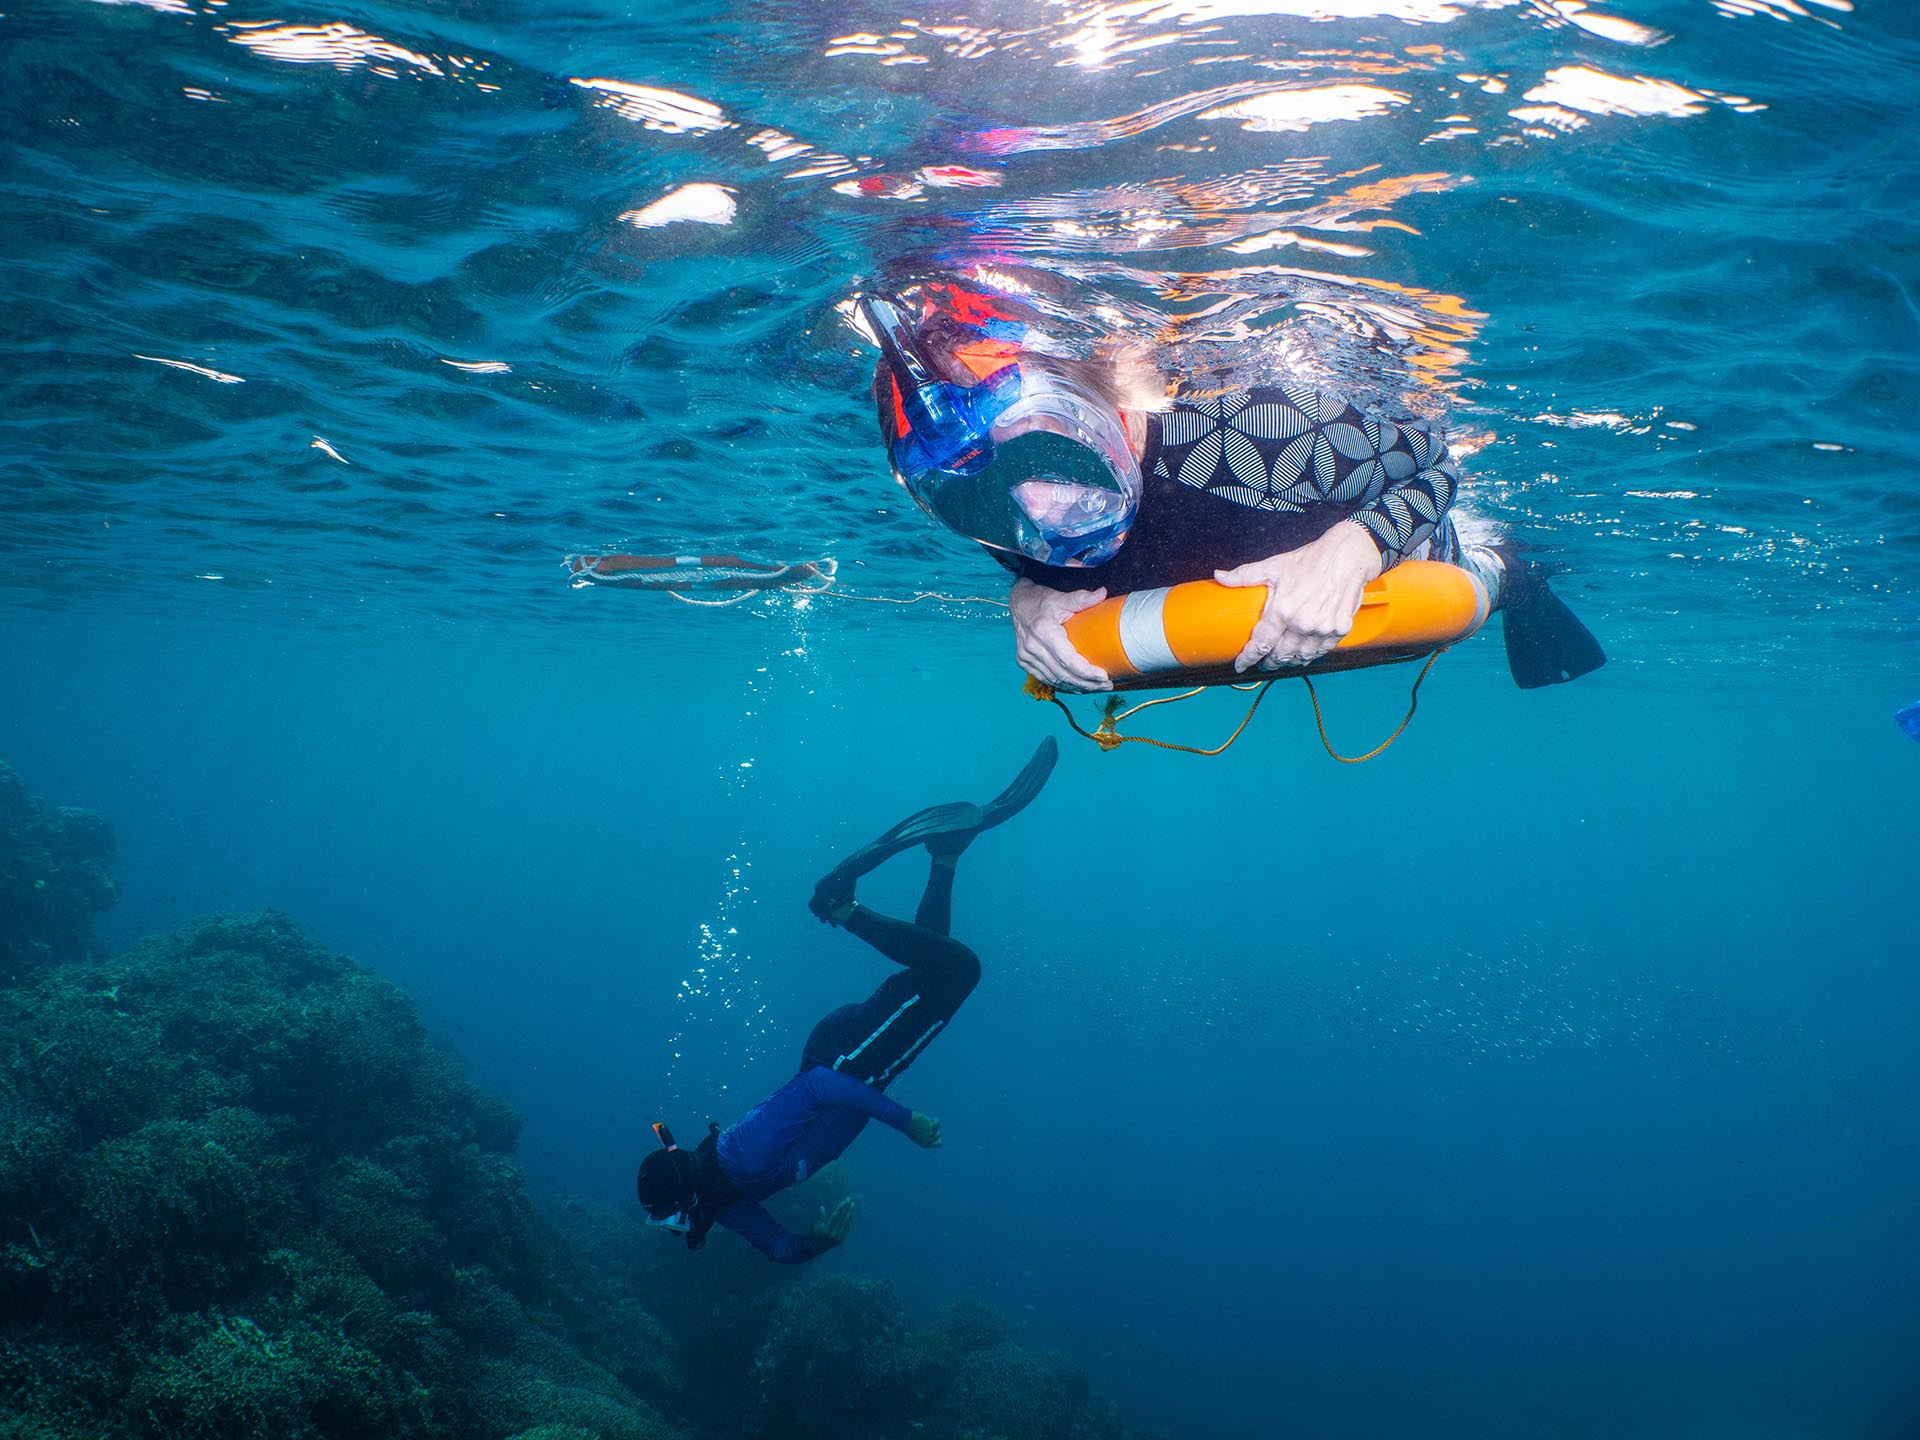 Snorkeler with life ring